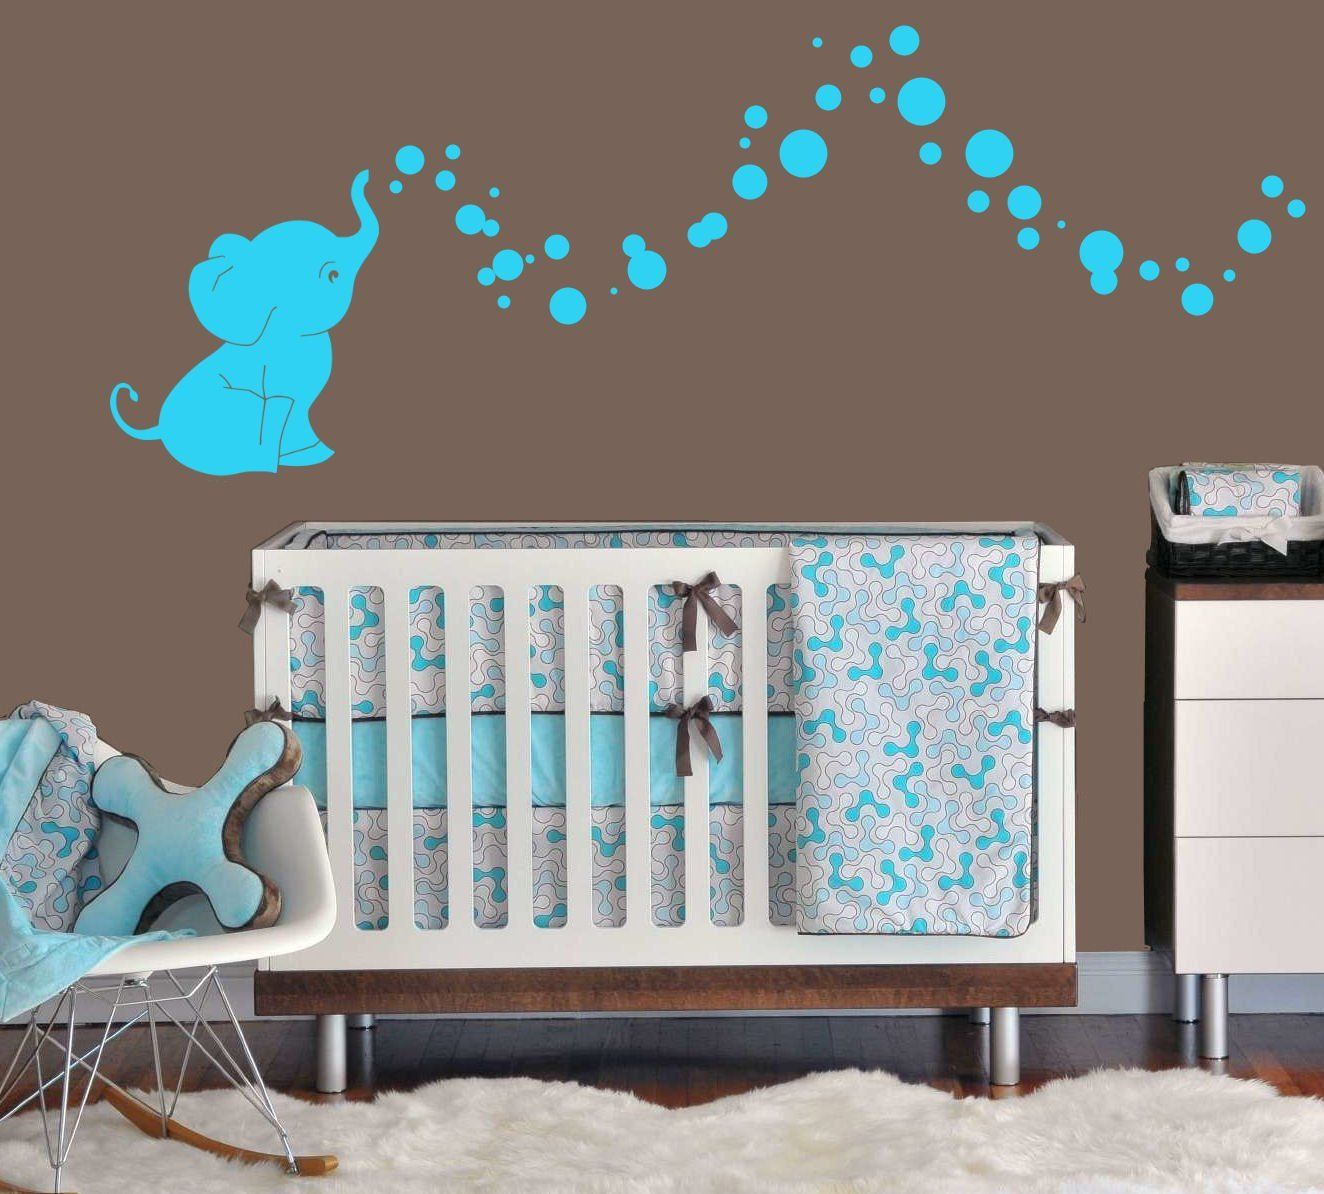 baby wall designs. Elephant Bubbles Nursery Wall Decal Set Great Shower Gift Room  Decor Light Blue